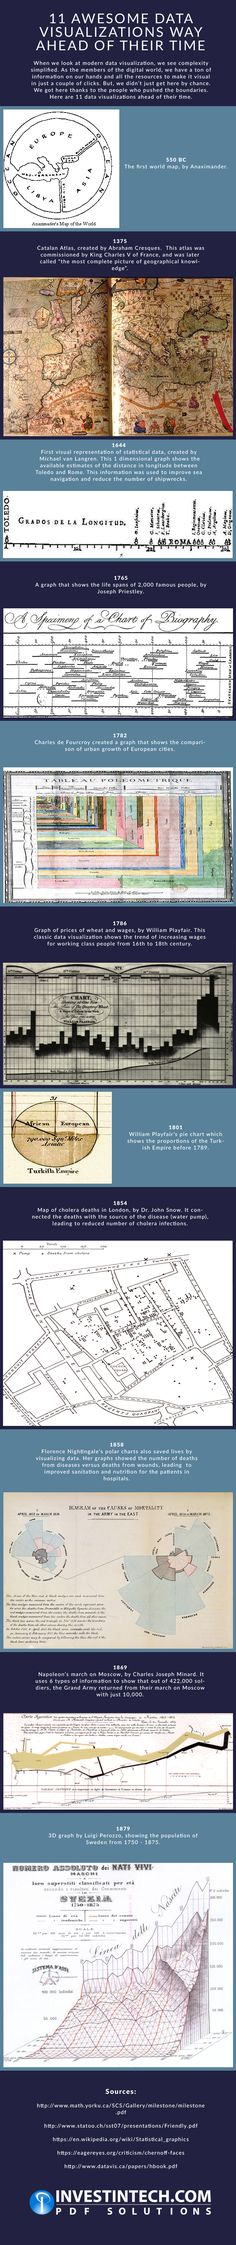 11 Awesome Data Visualizations Way Ahead of Their Time [Infographic]